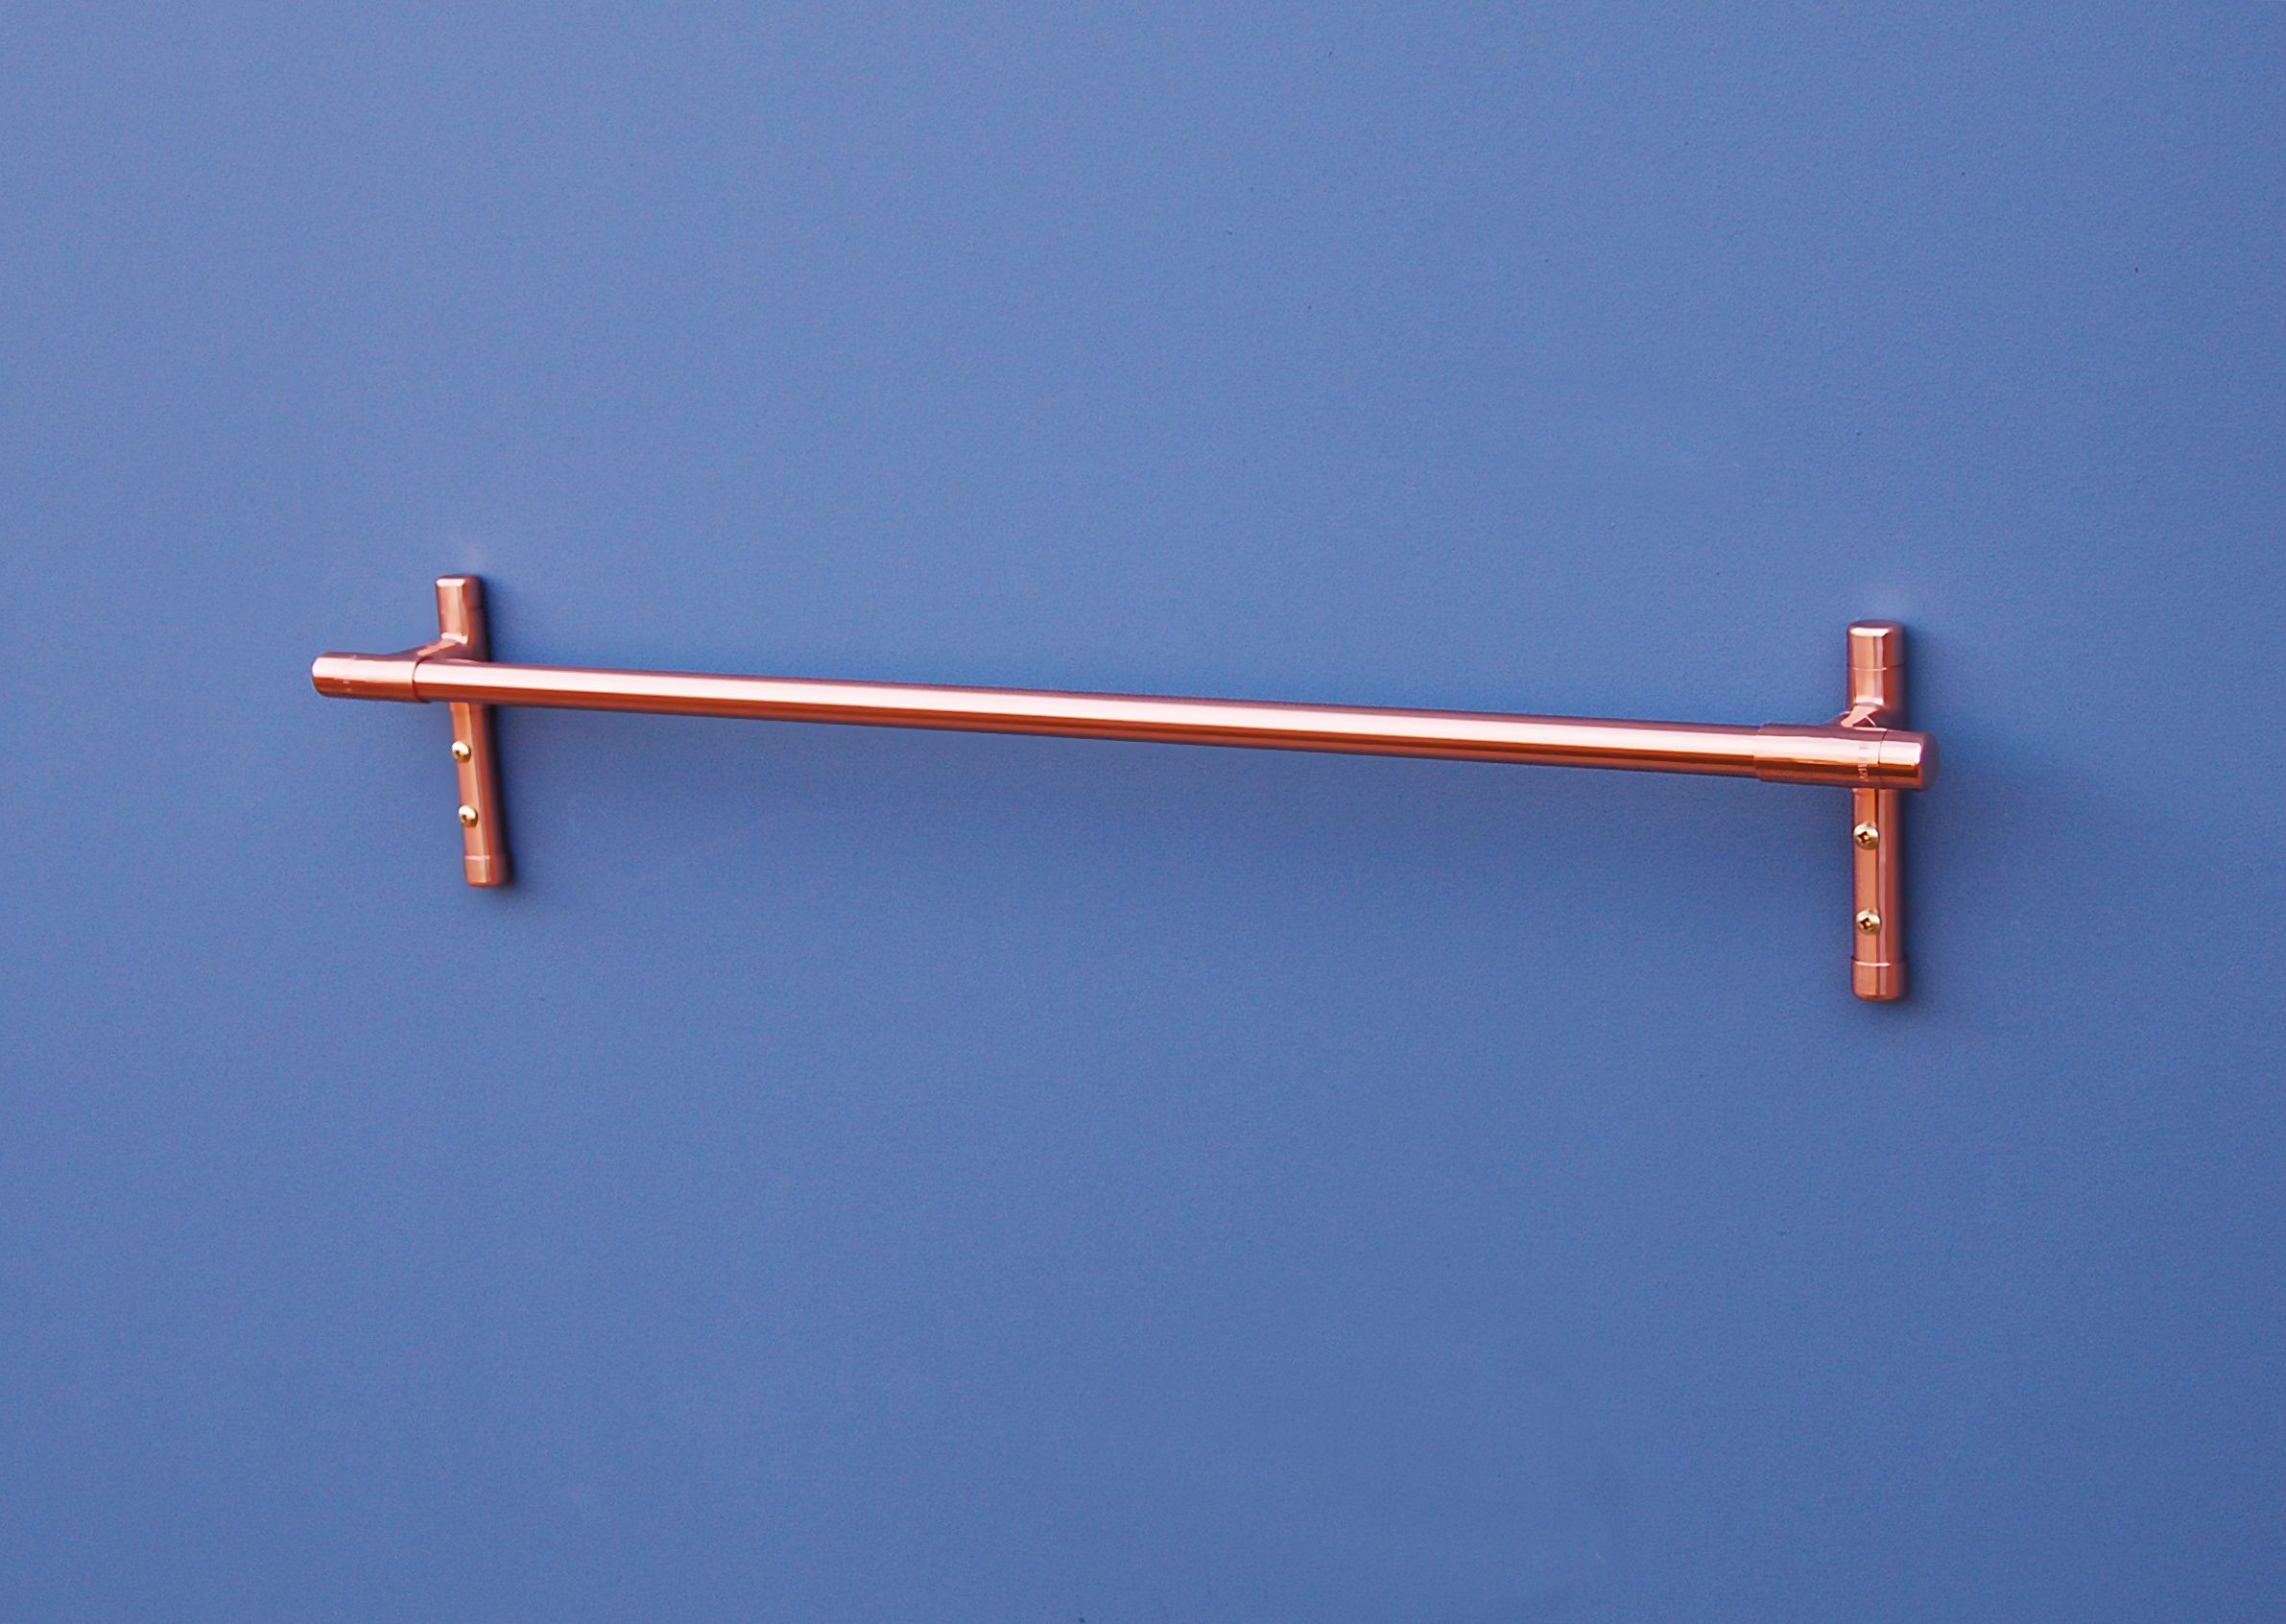 Modern, Minimal Styling Gives This Pure Copper Towel Rail A Real ...